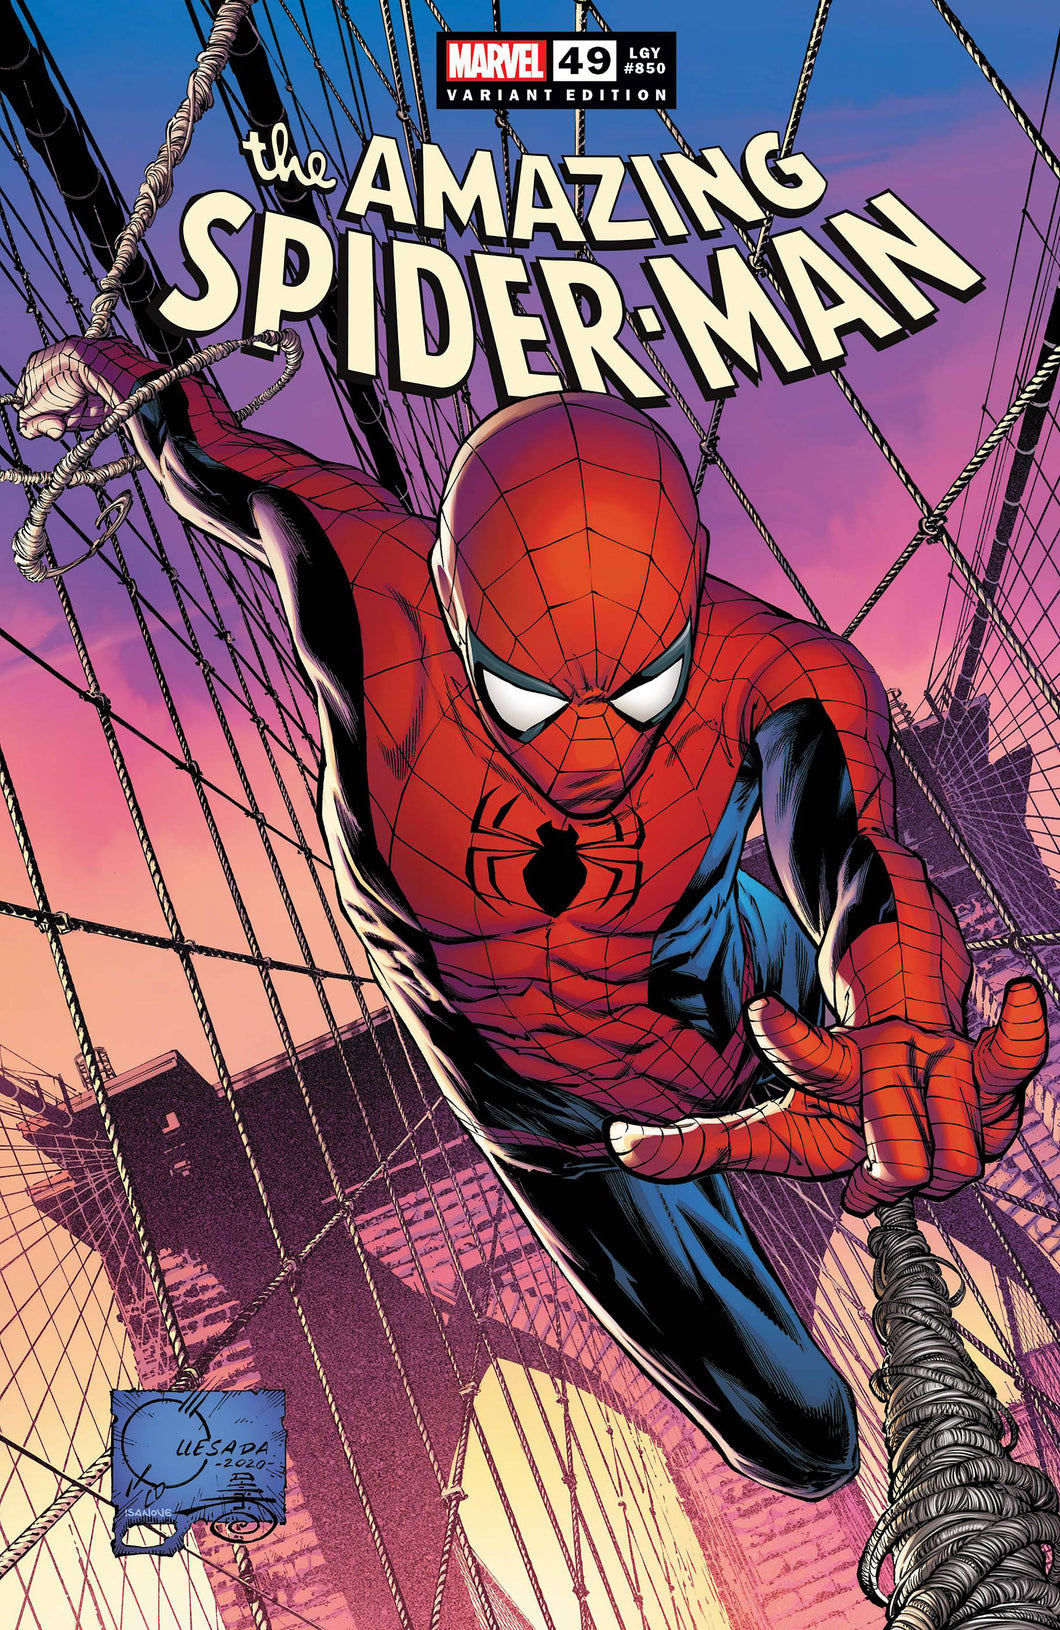 AMAZING SPIDER-MAN #49 850 1:50 QUESADA VARIANT